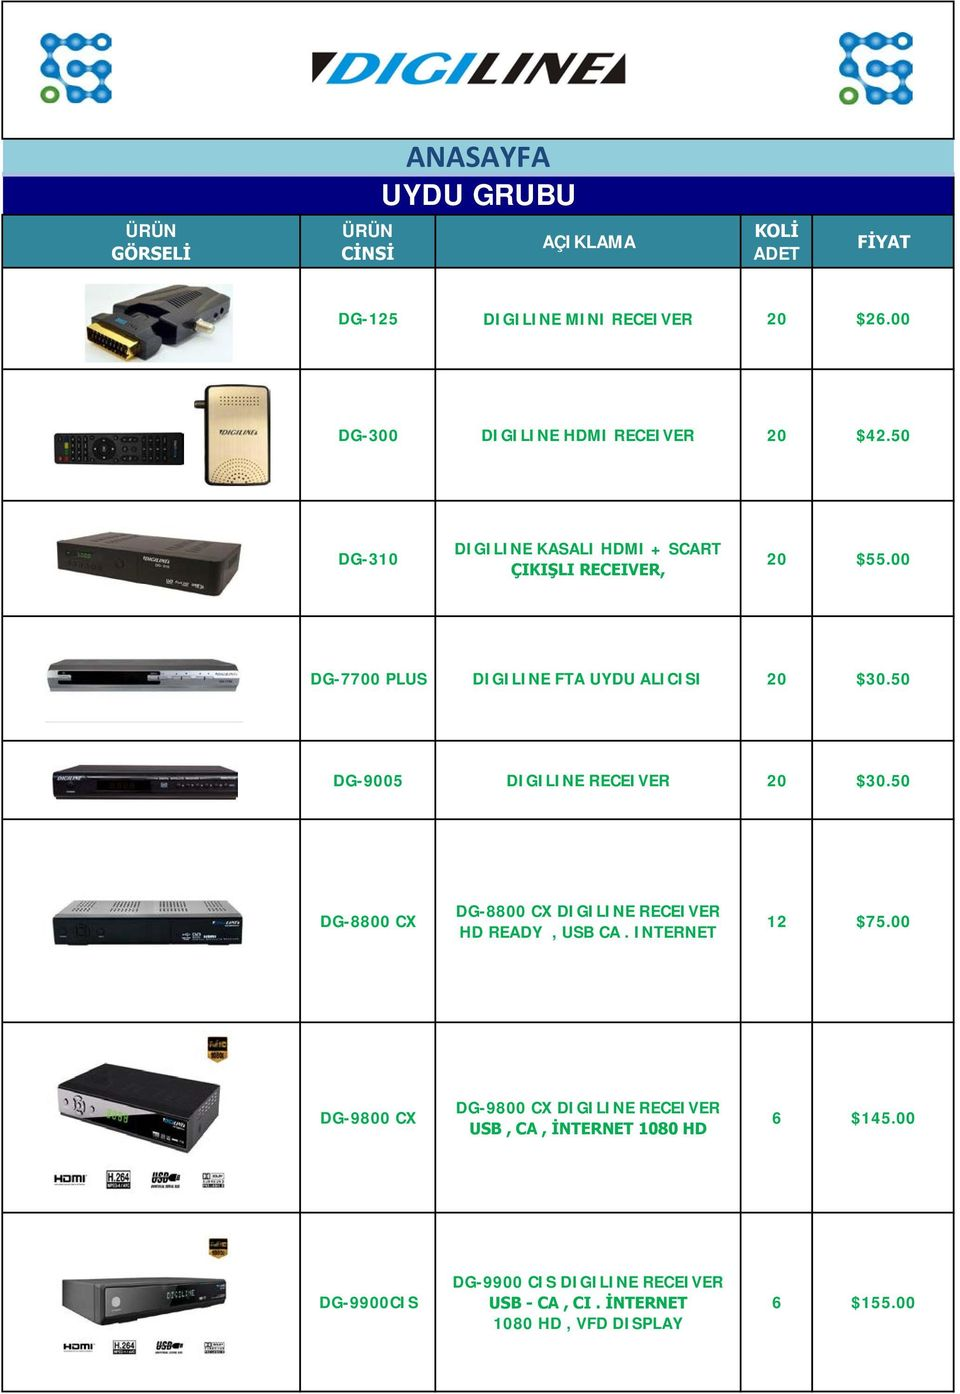 50 DG-9005 DIGILINE RECEIVER 20 $30.50 DG-8800 CX DG-8800 CX DIGILINE RECEIVER HD READY, USB CA. INTERNET 12 $75.